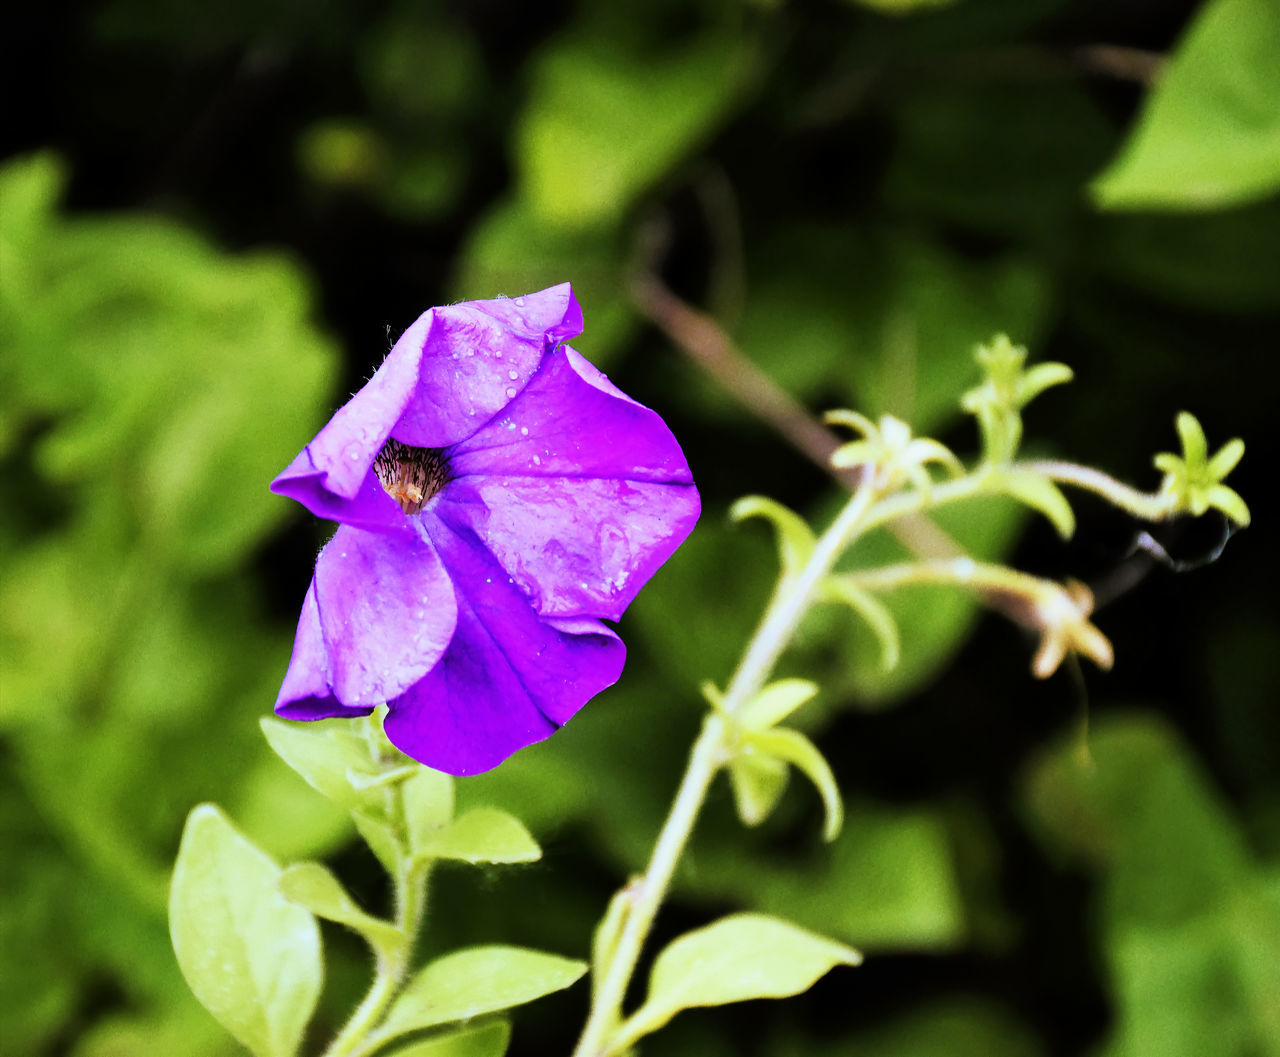 flower, fragility, petal, beauty in nature, nature, plant, growth, flower head, purple, freshness, no people, day, focus on foreground, outdoors, leaf, blooming, close-up, petunia